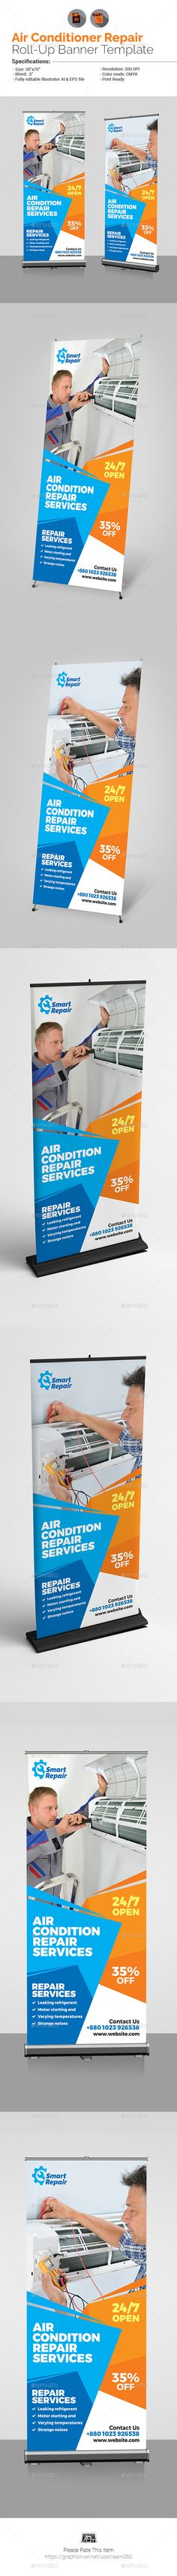 Beauty Salon & Spa - Roll-Up Banner Template Vector EPS, AI ...